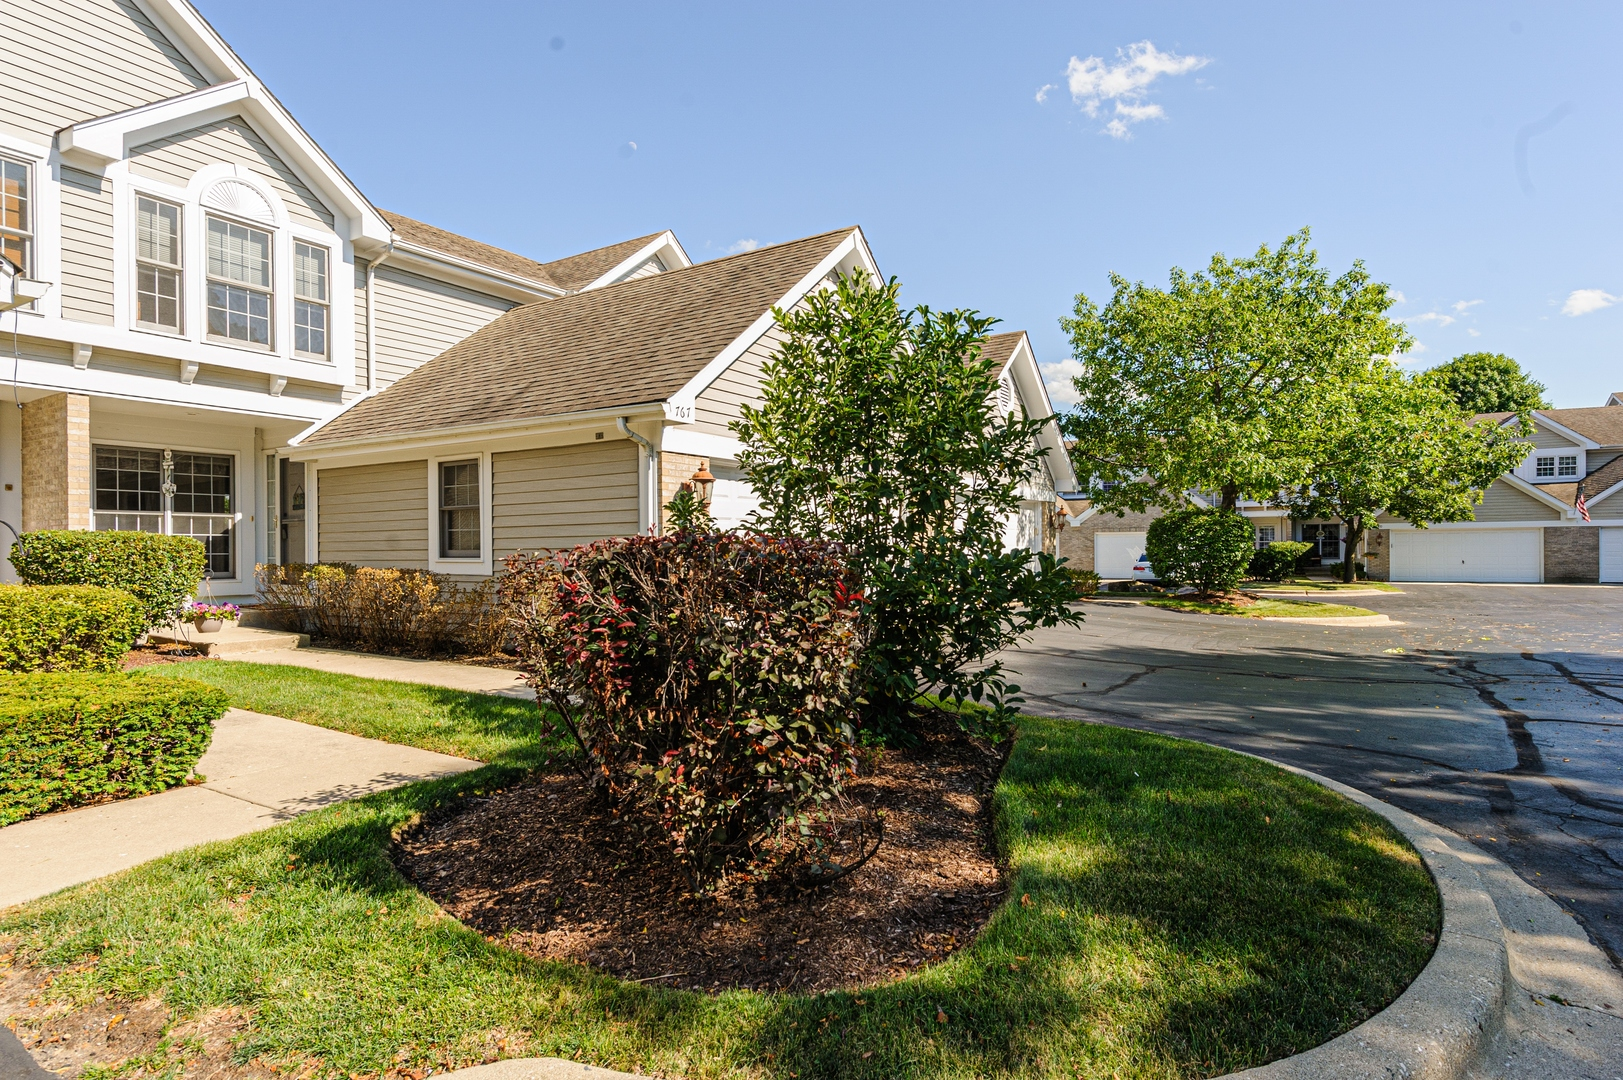 Photo for 767 Regency Park Drive, Crystal Lake, IL 60014 (MLS # 10846906)